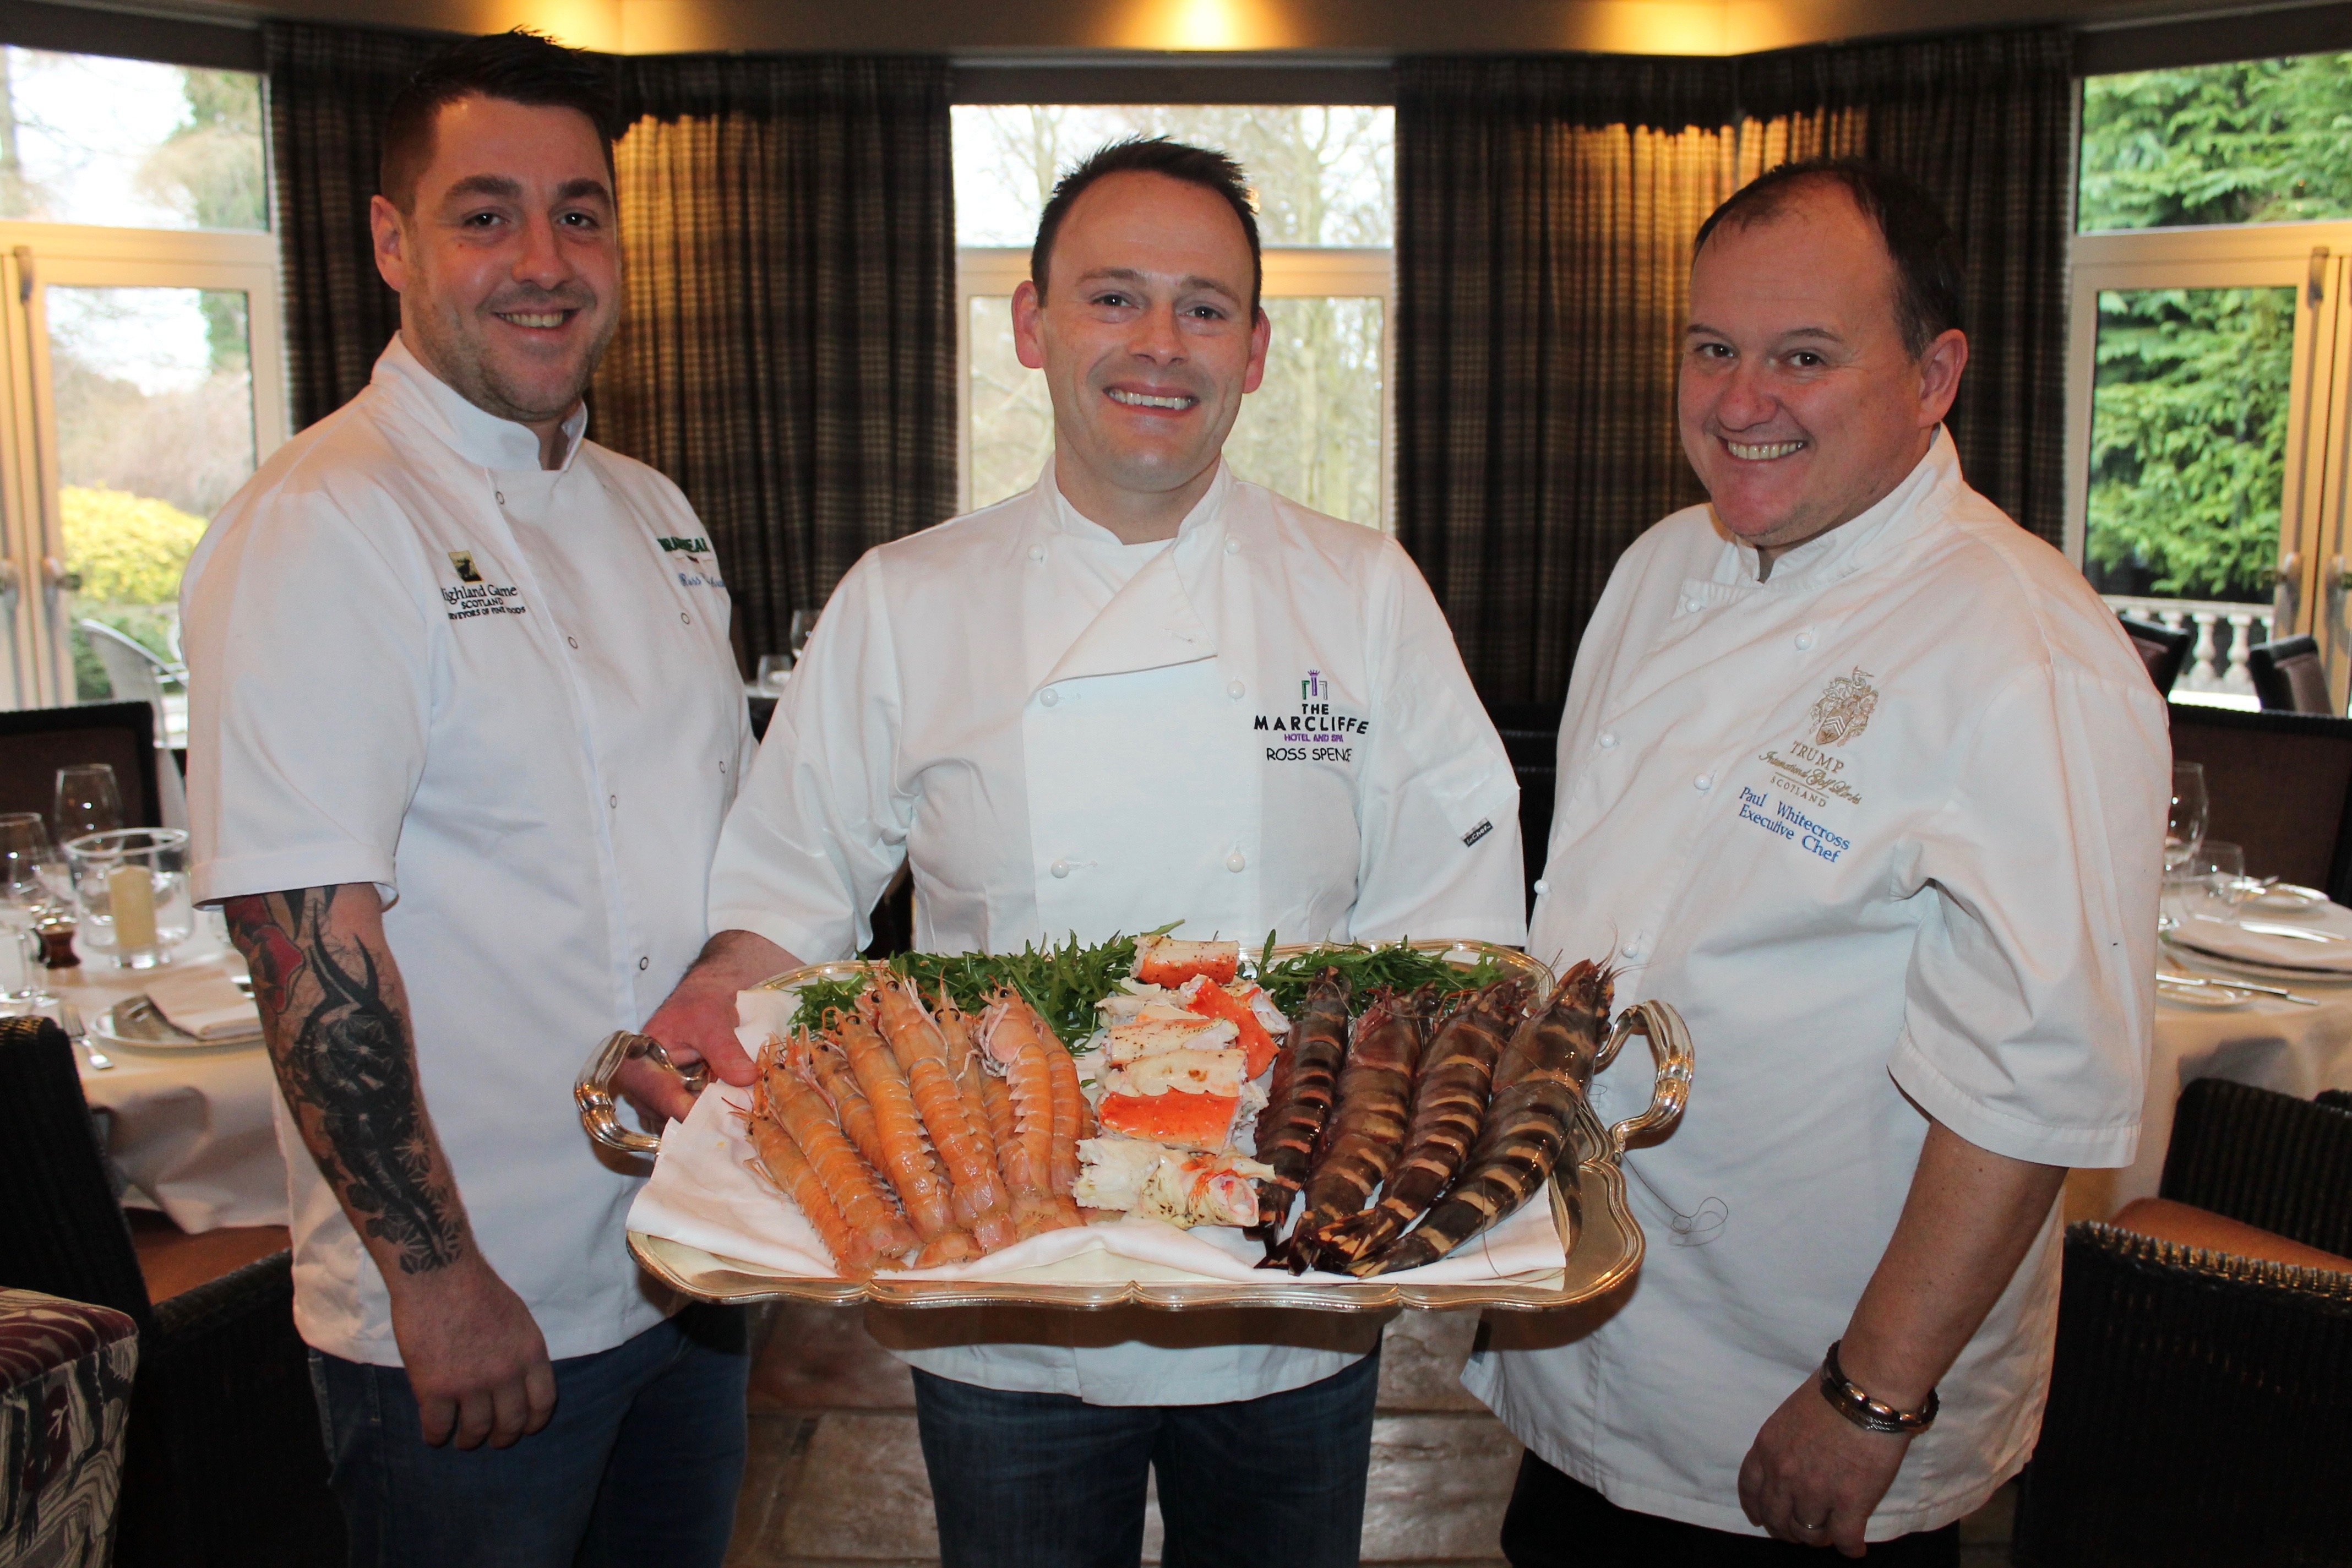 Media Release: Top Scottish chefs team up for North East culinary sensation for NE sensory charity